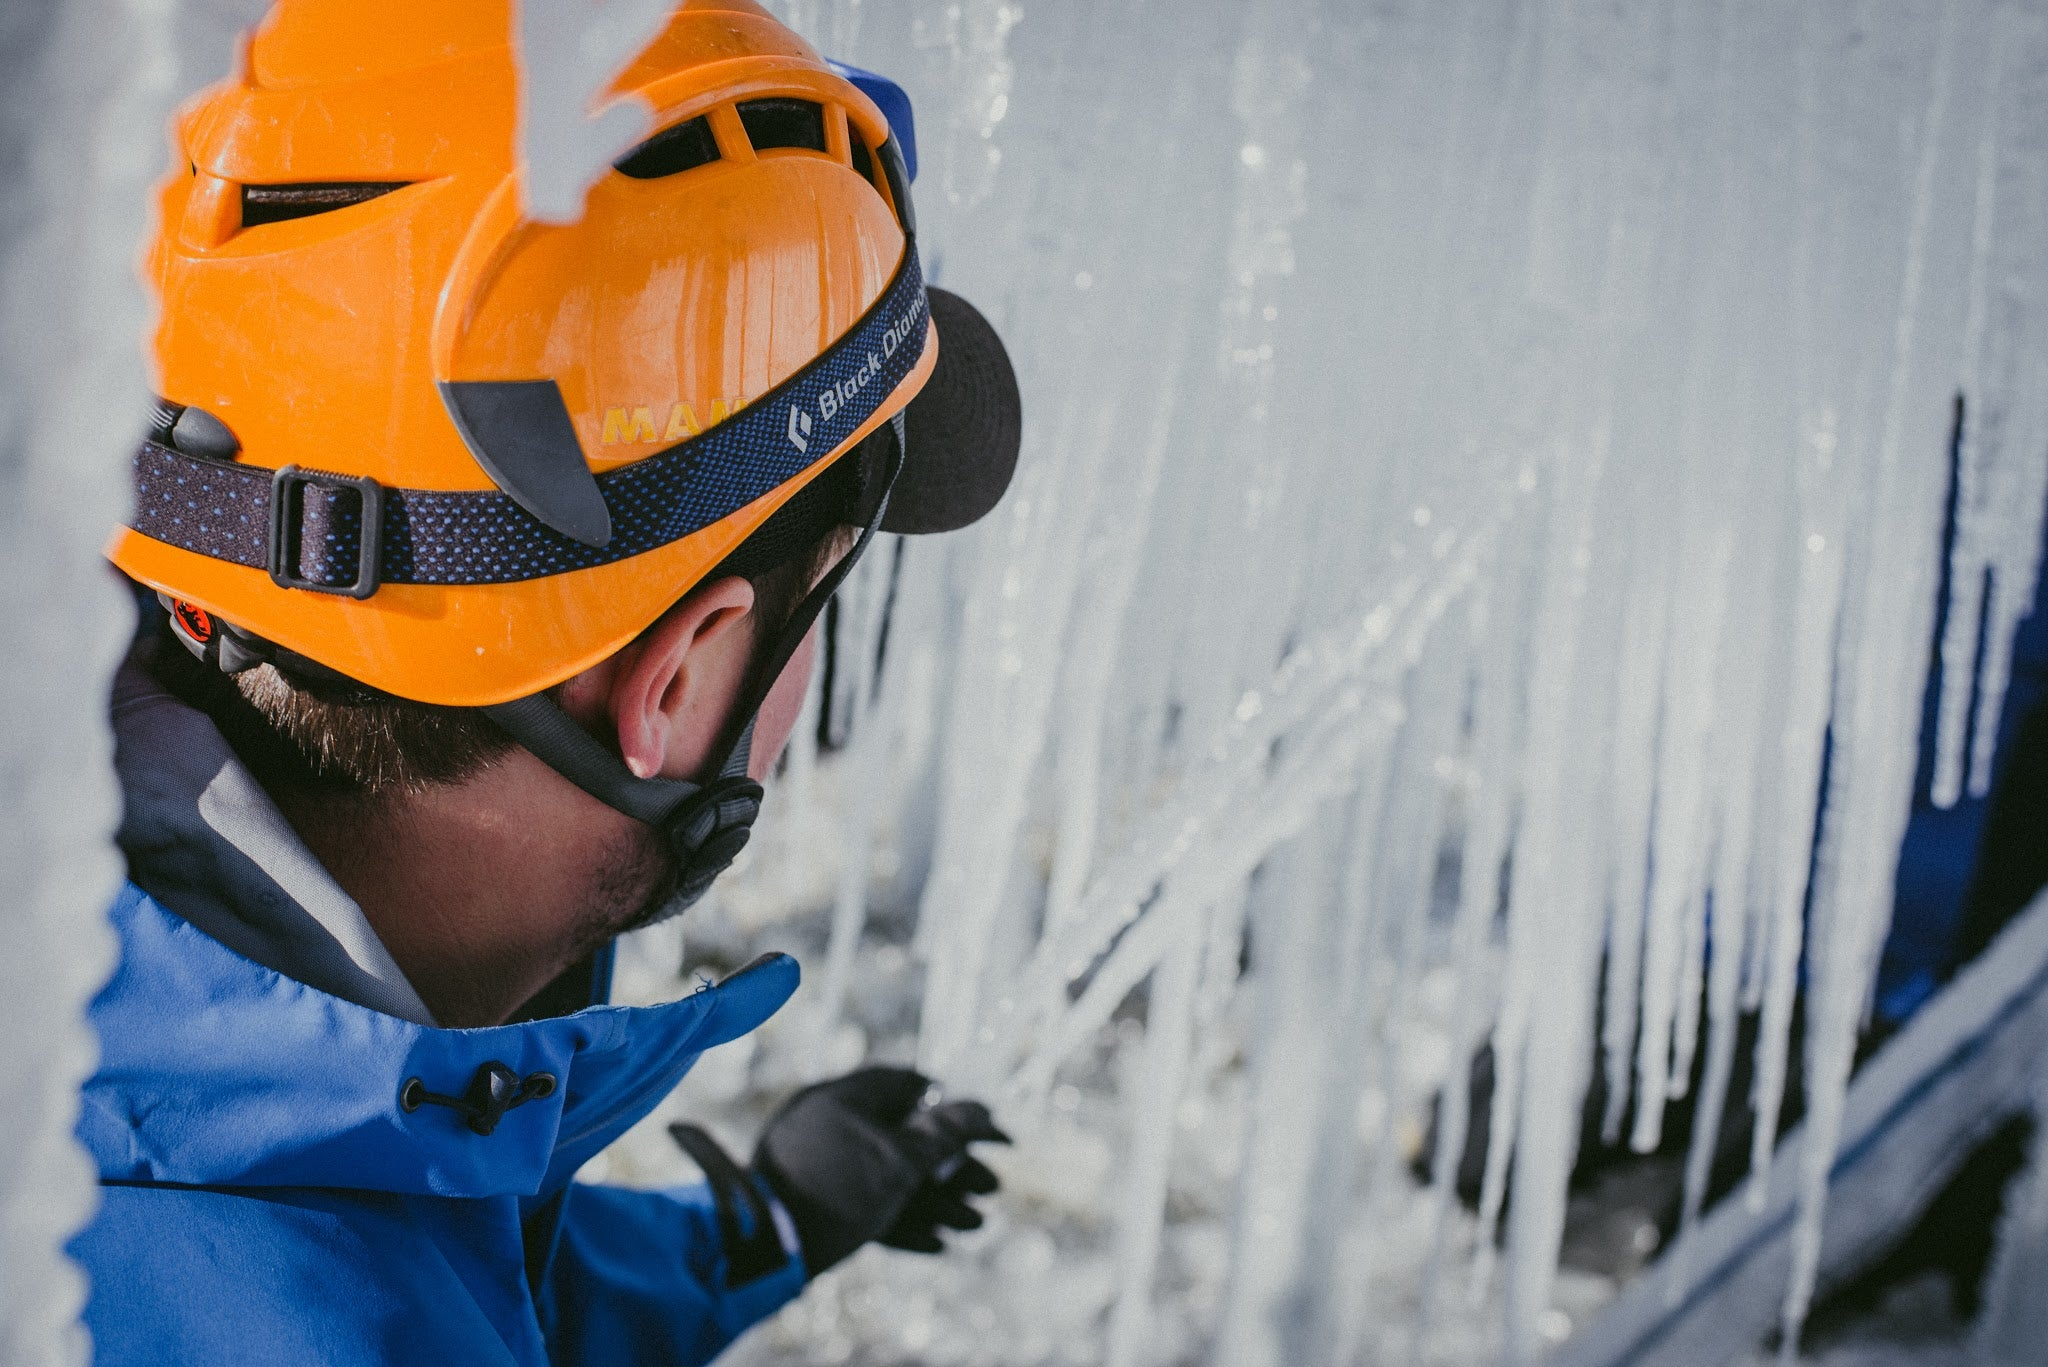 An ice artisan harvests icicles.